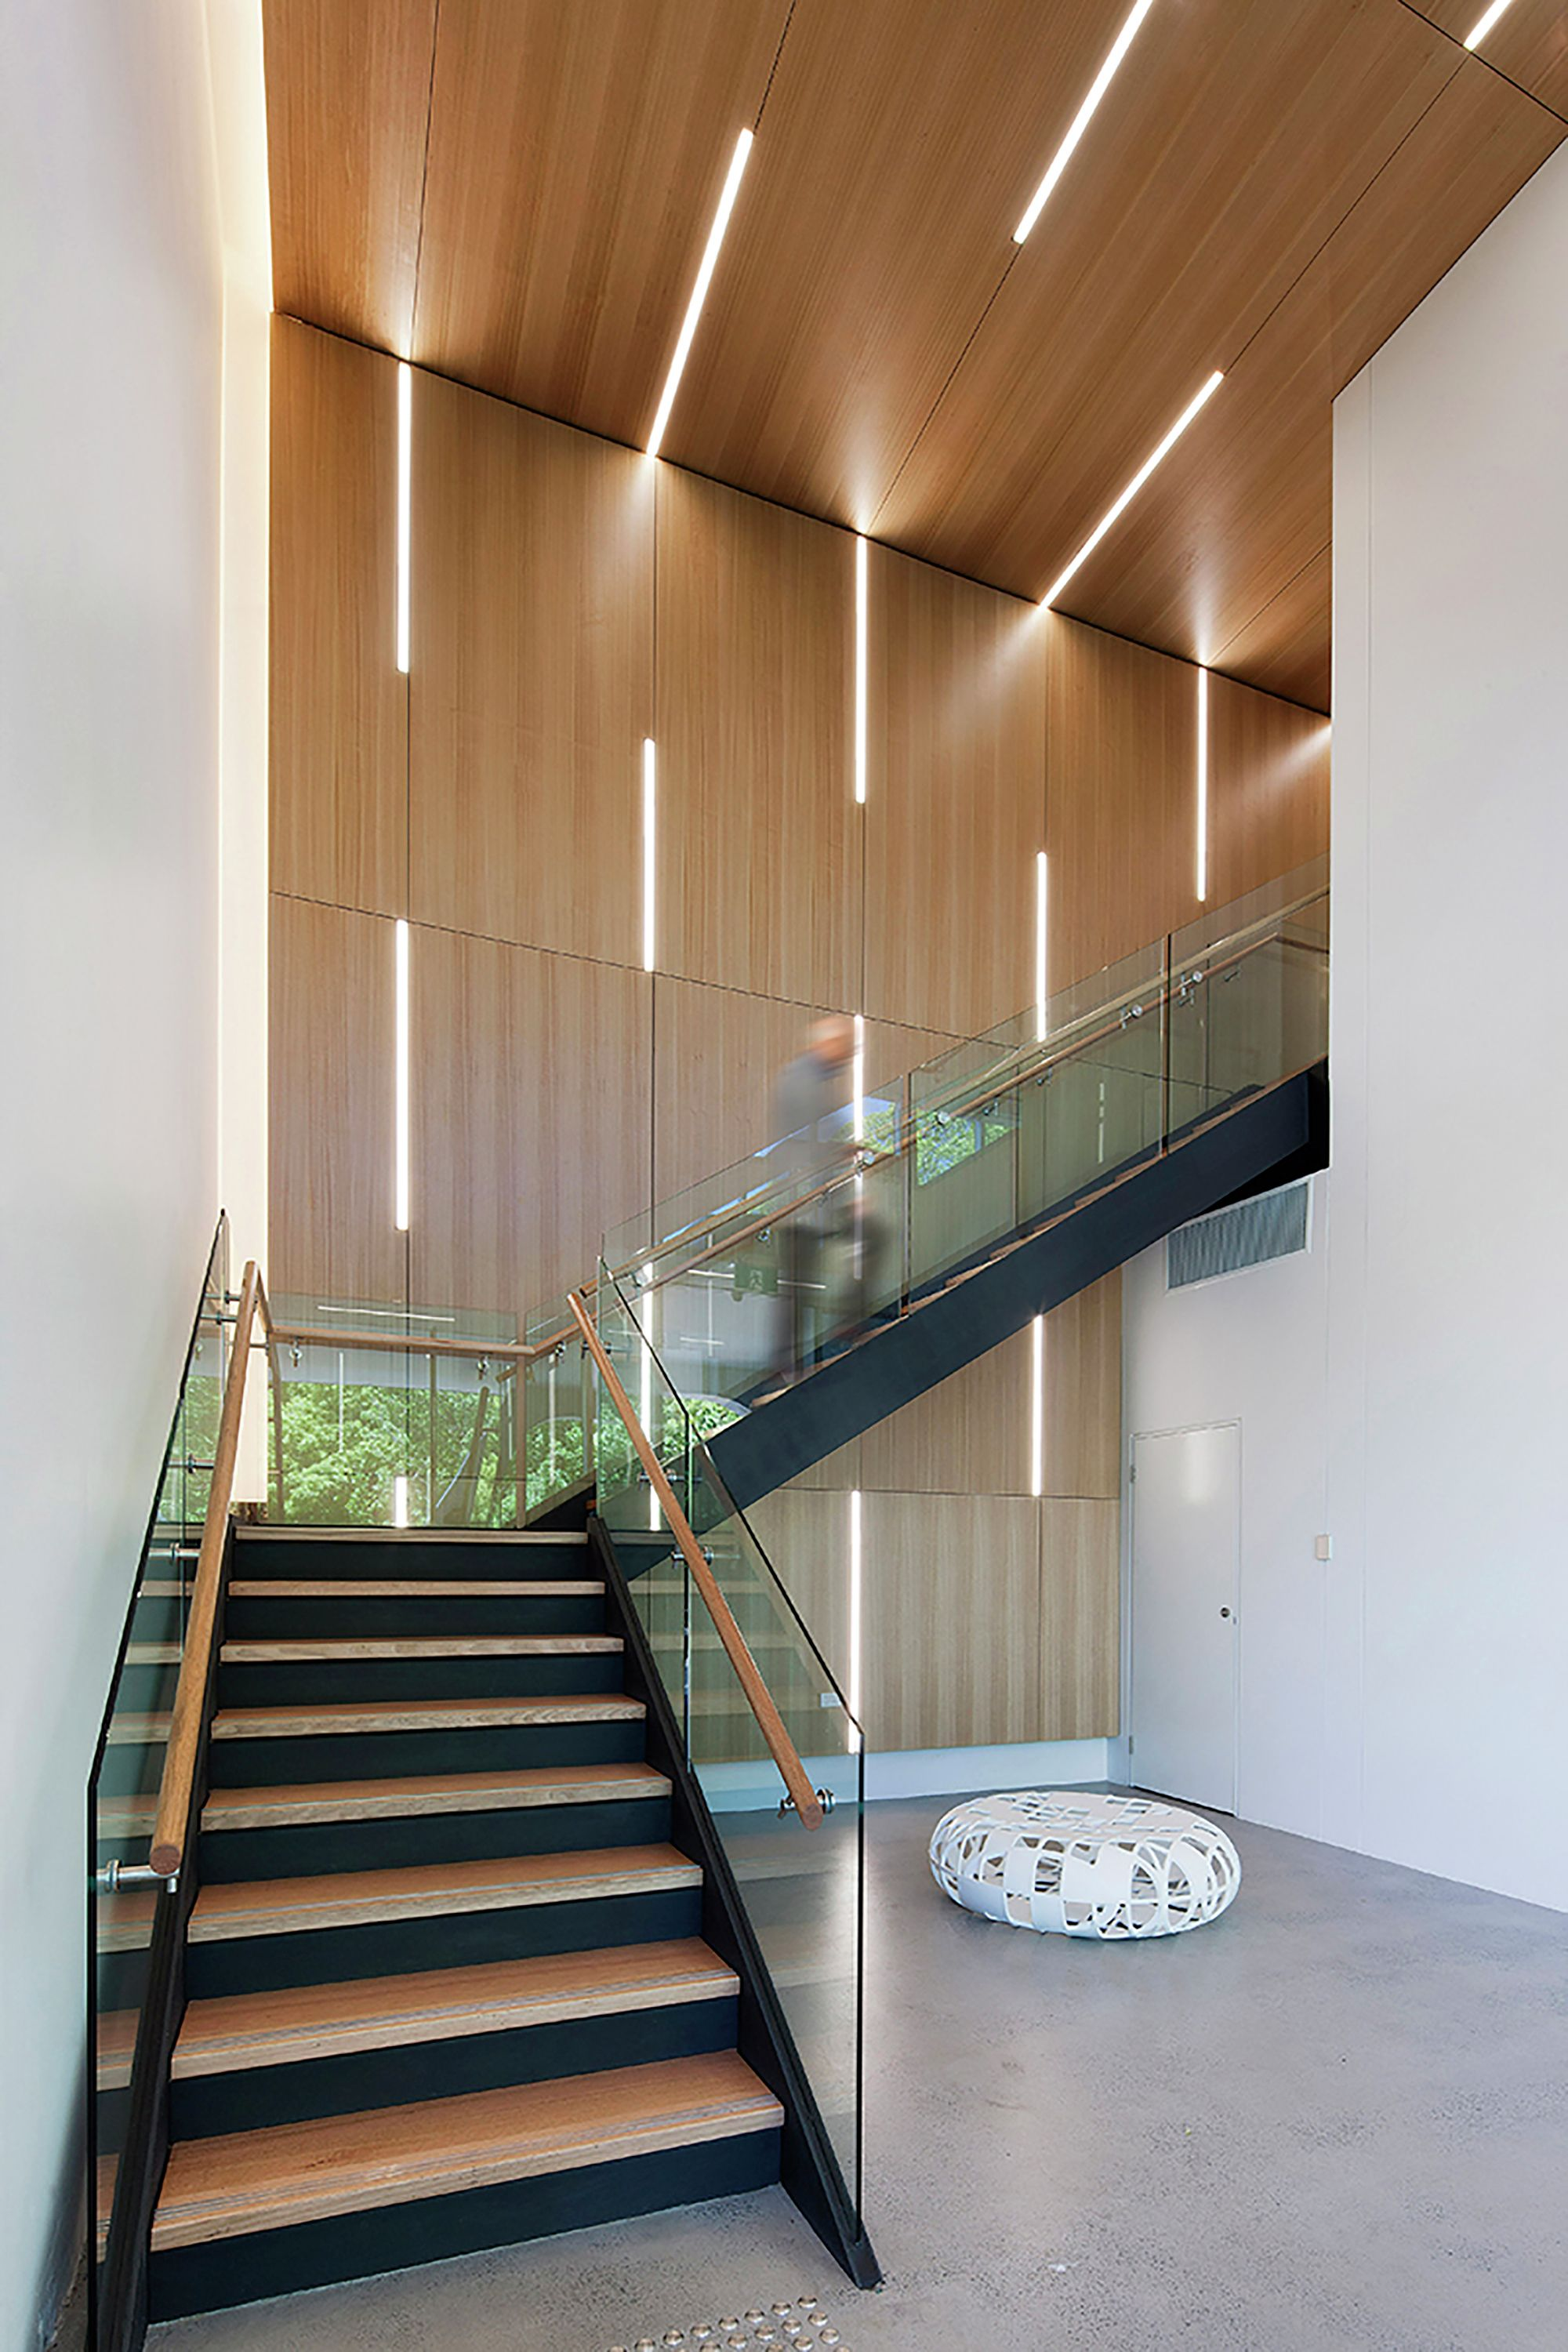 Best Gallery Of The Clarence Reardon Centre Ghd Woodhead 3 640 x 480